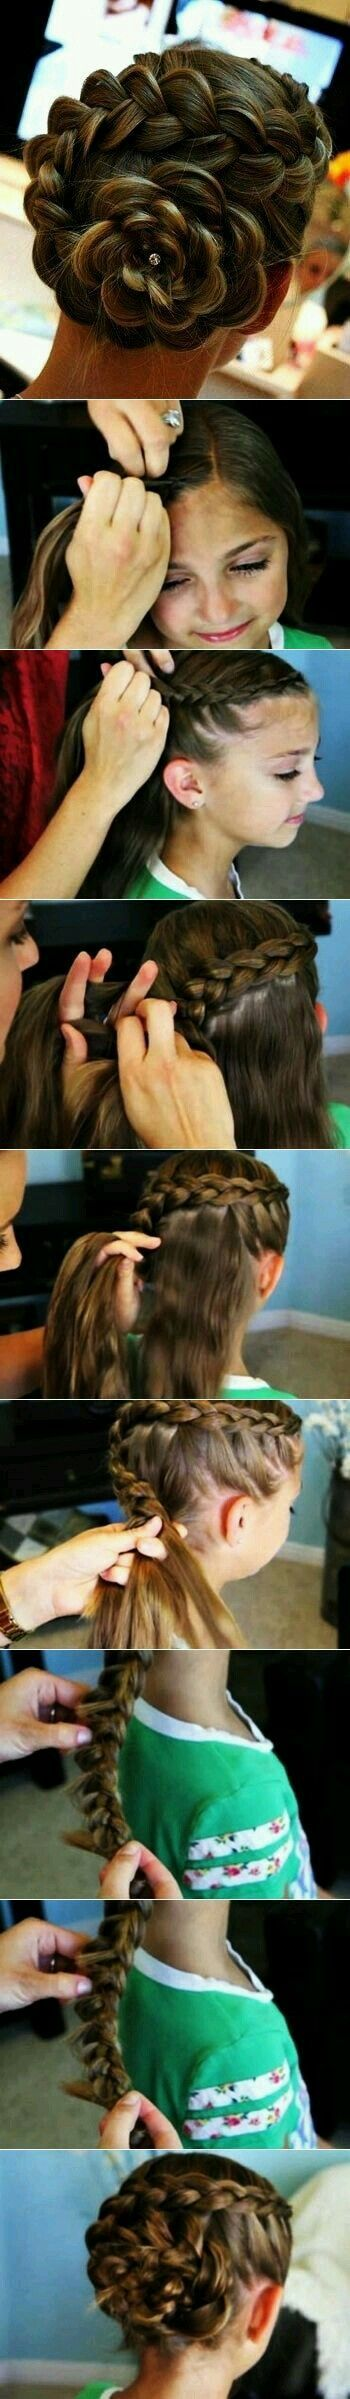 best Beauty MakeUp images on Pinterest Hairstyles Make up